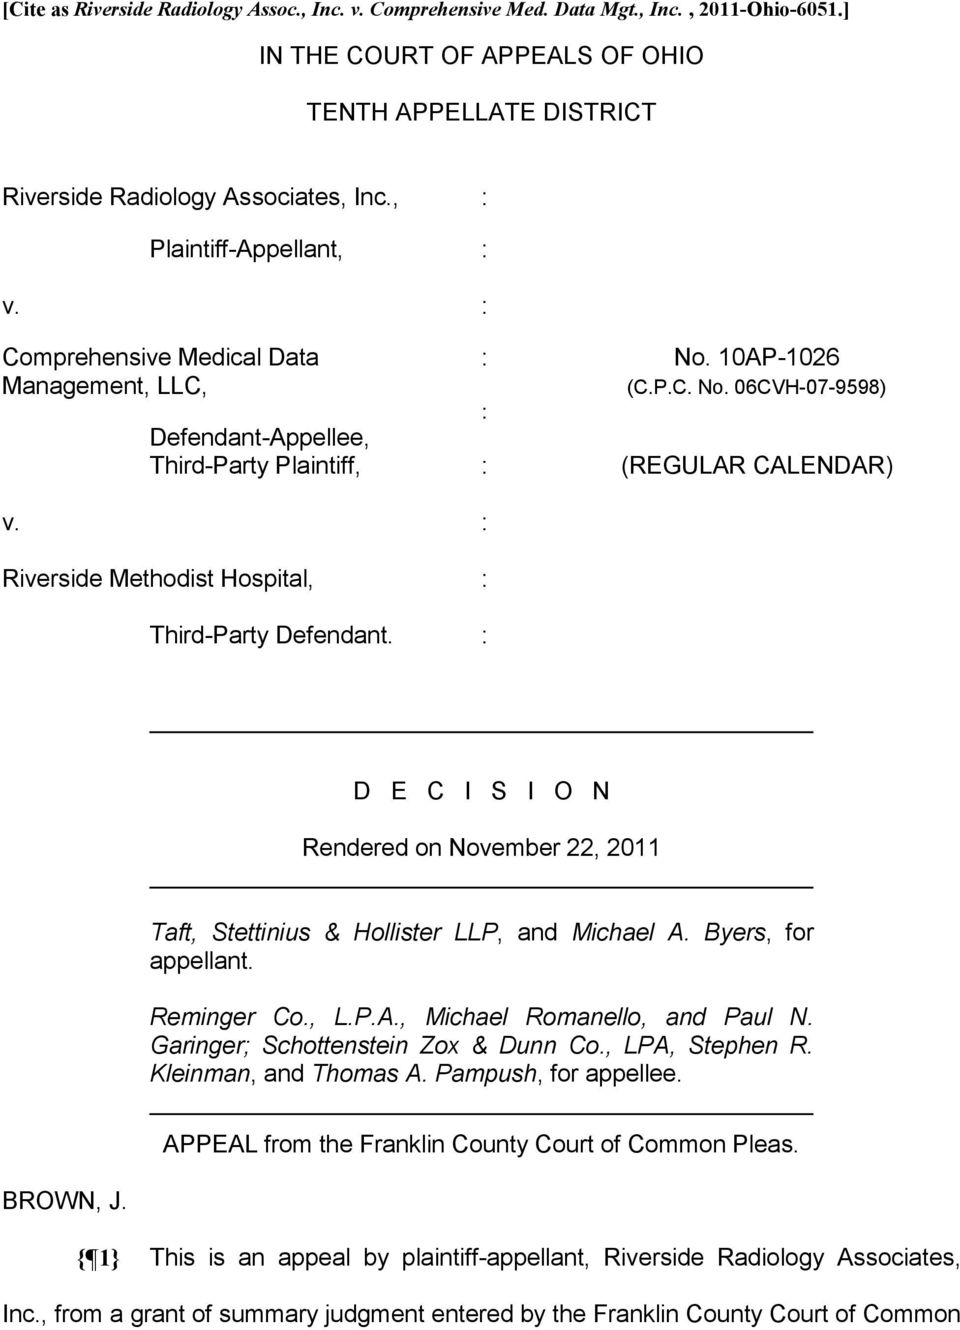 : Riverside Methodist Hospital, : Third-Party Defendant. : D E C I S I O N Rendered on November 22, 2011 Taft, Stettinius & Hollister LLP, and Michael A. Byers, for appellant. Reminger Co., L.P.A., Michael Romanello, and Paul N.